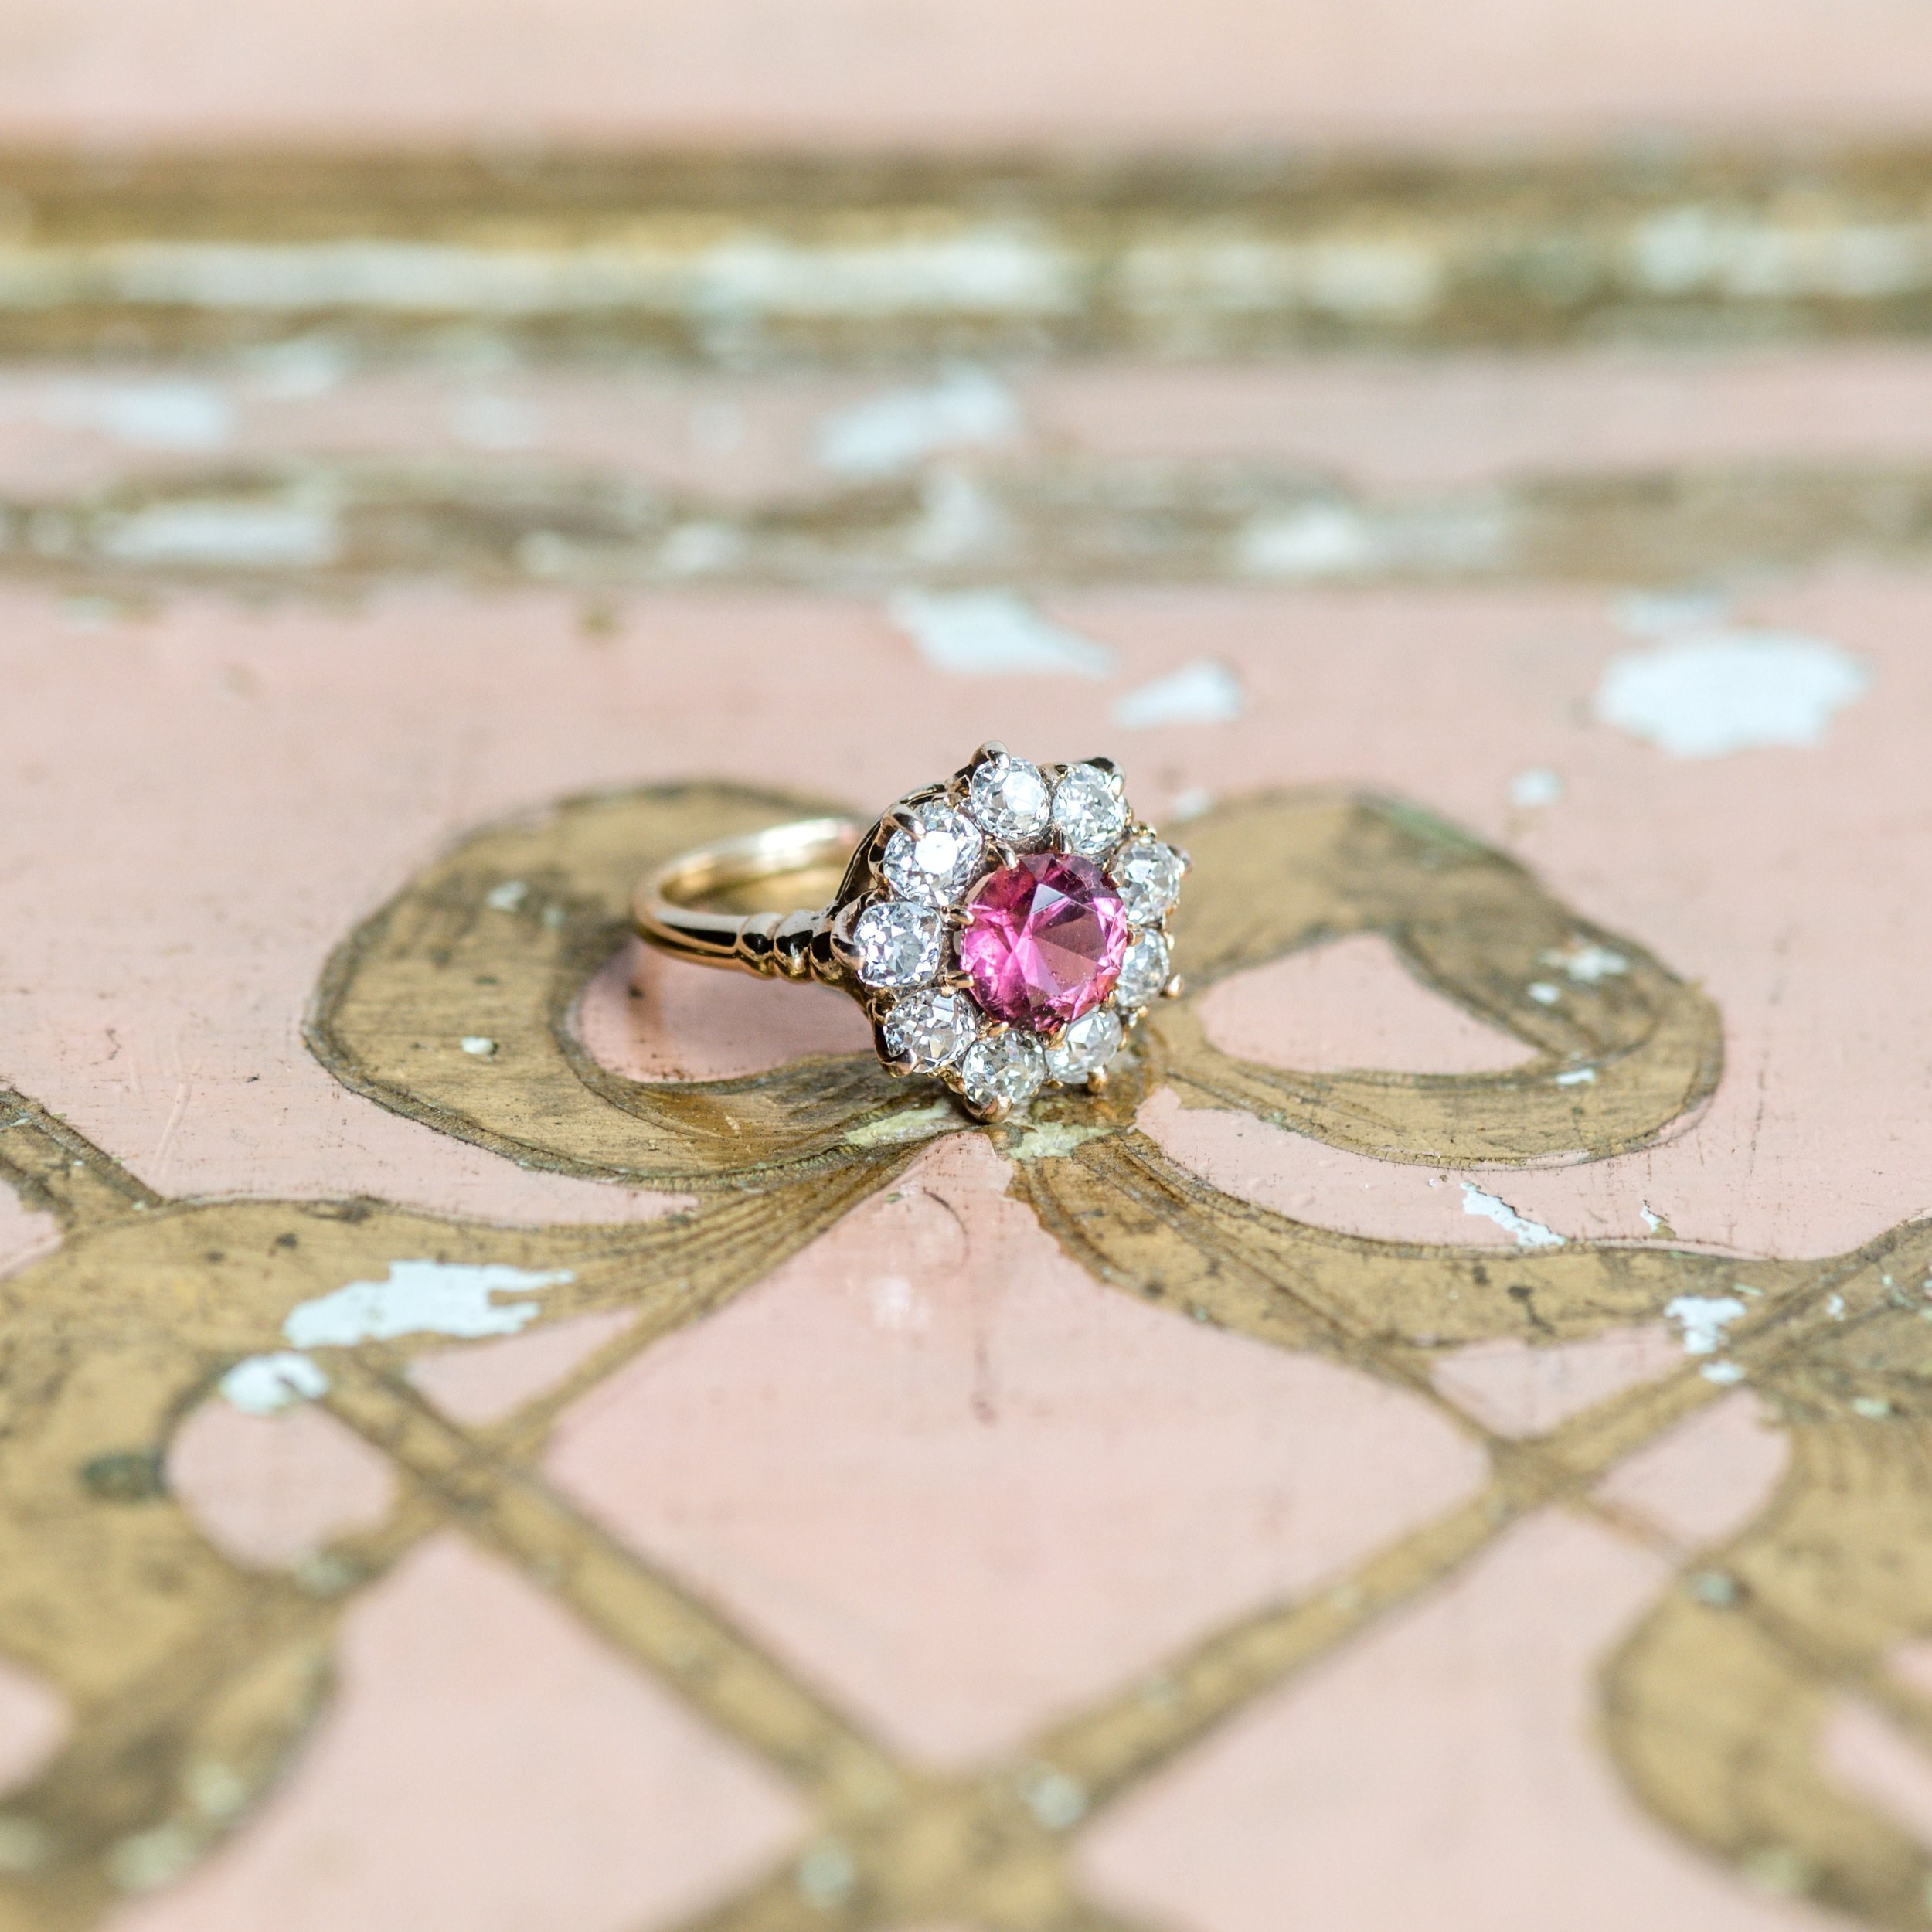 A pop of pink sets this lovely ring apart from the rest! Shop this beautiful pink tourmaline and Old Mine cut diamond ring  HERE .